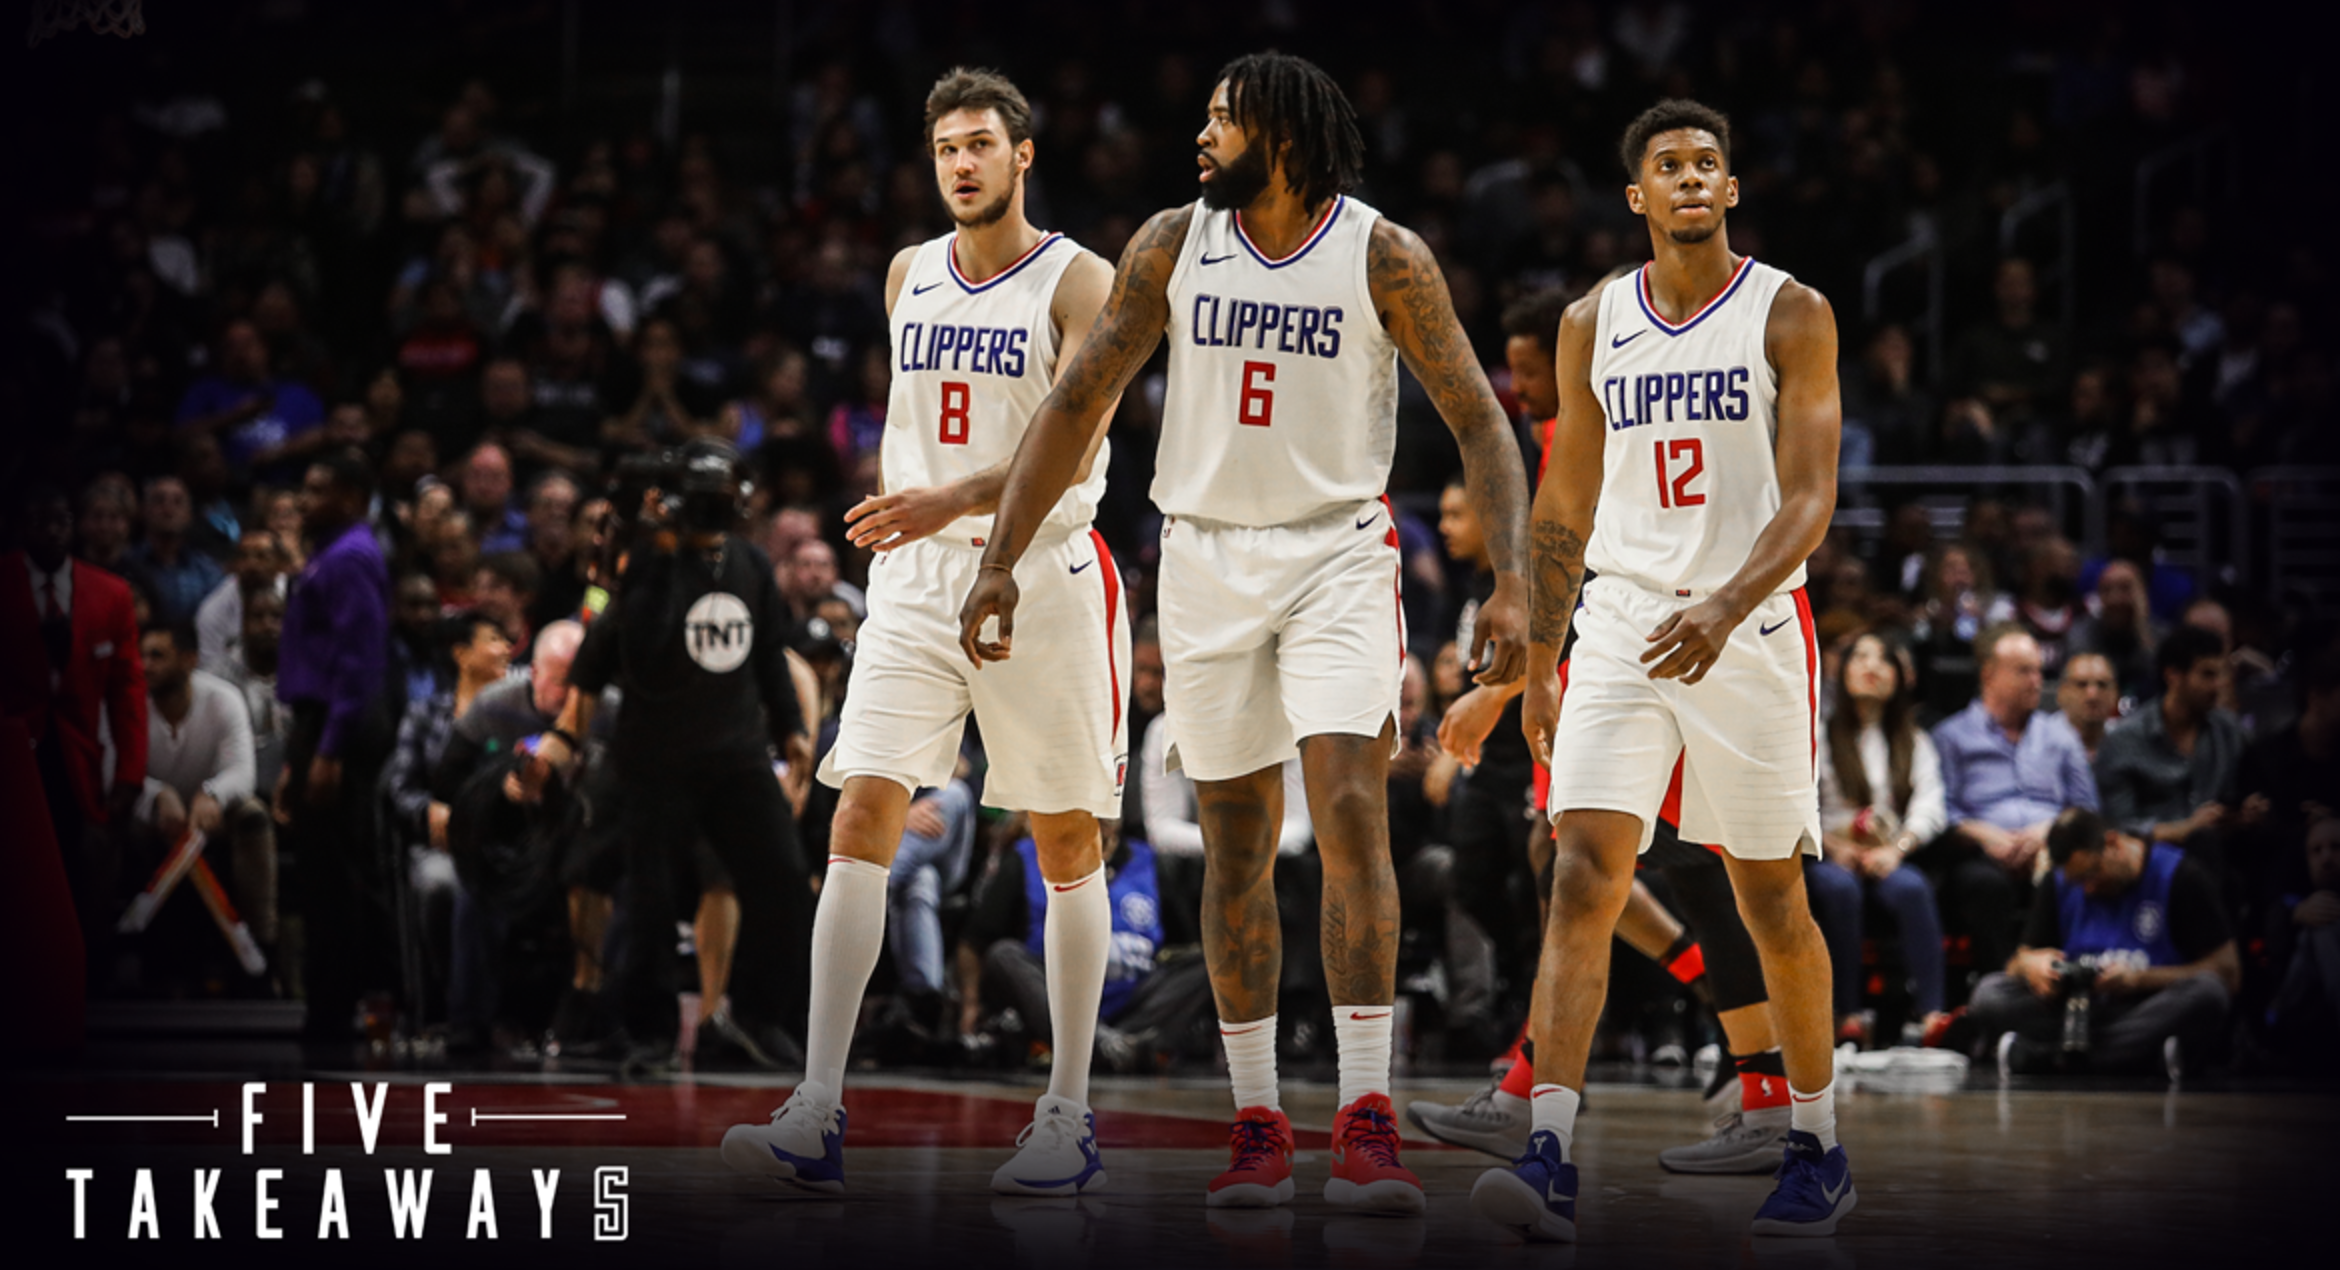 Five Takeaways: Clippers make a late run, but fall short in loss to Blazers